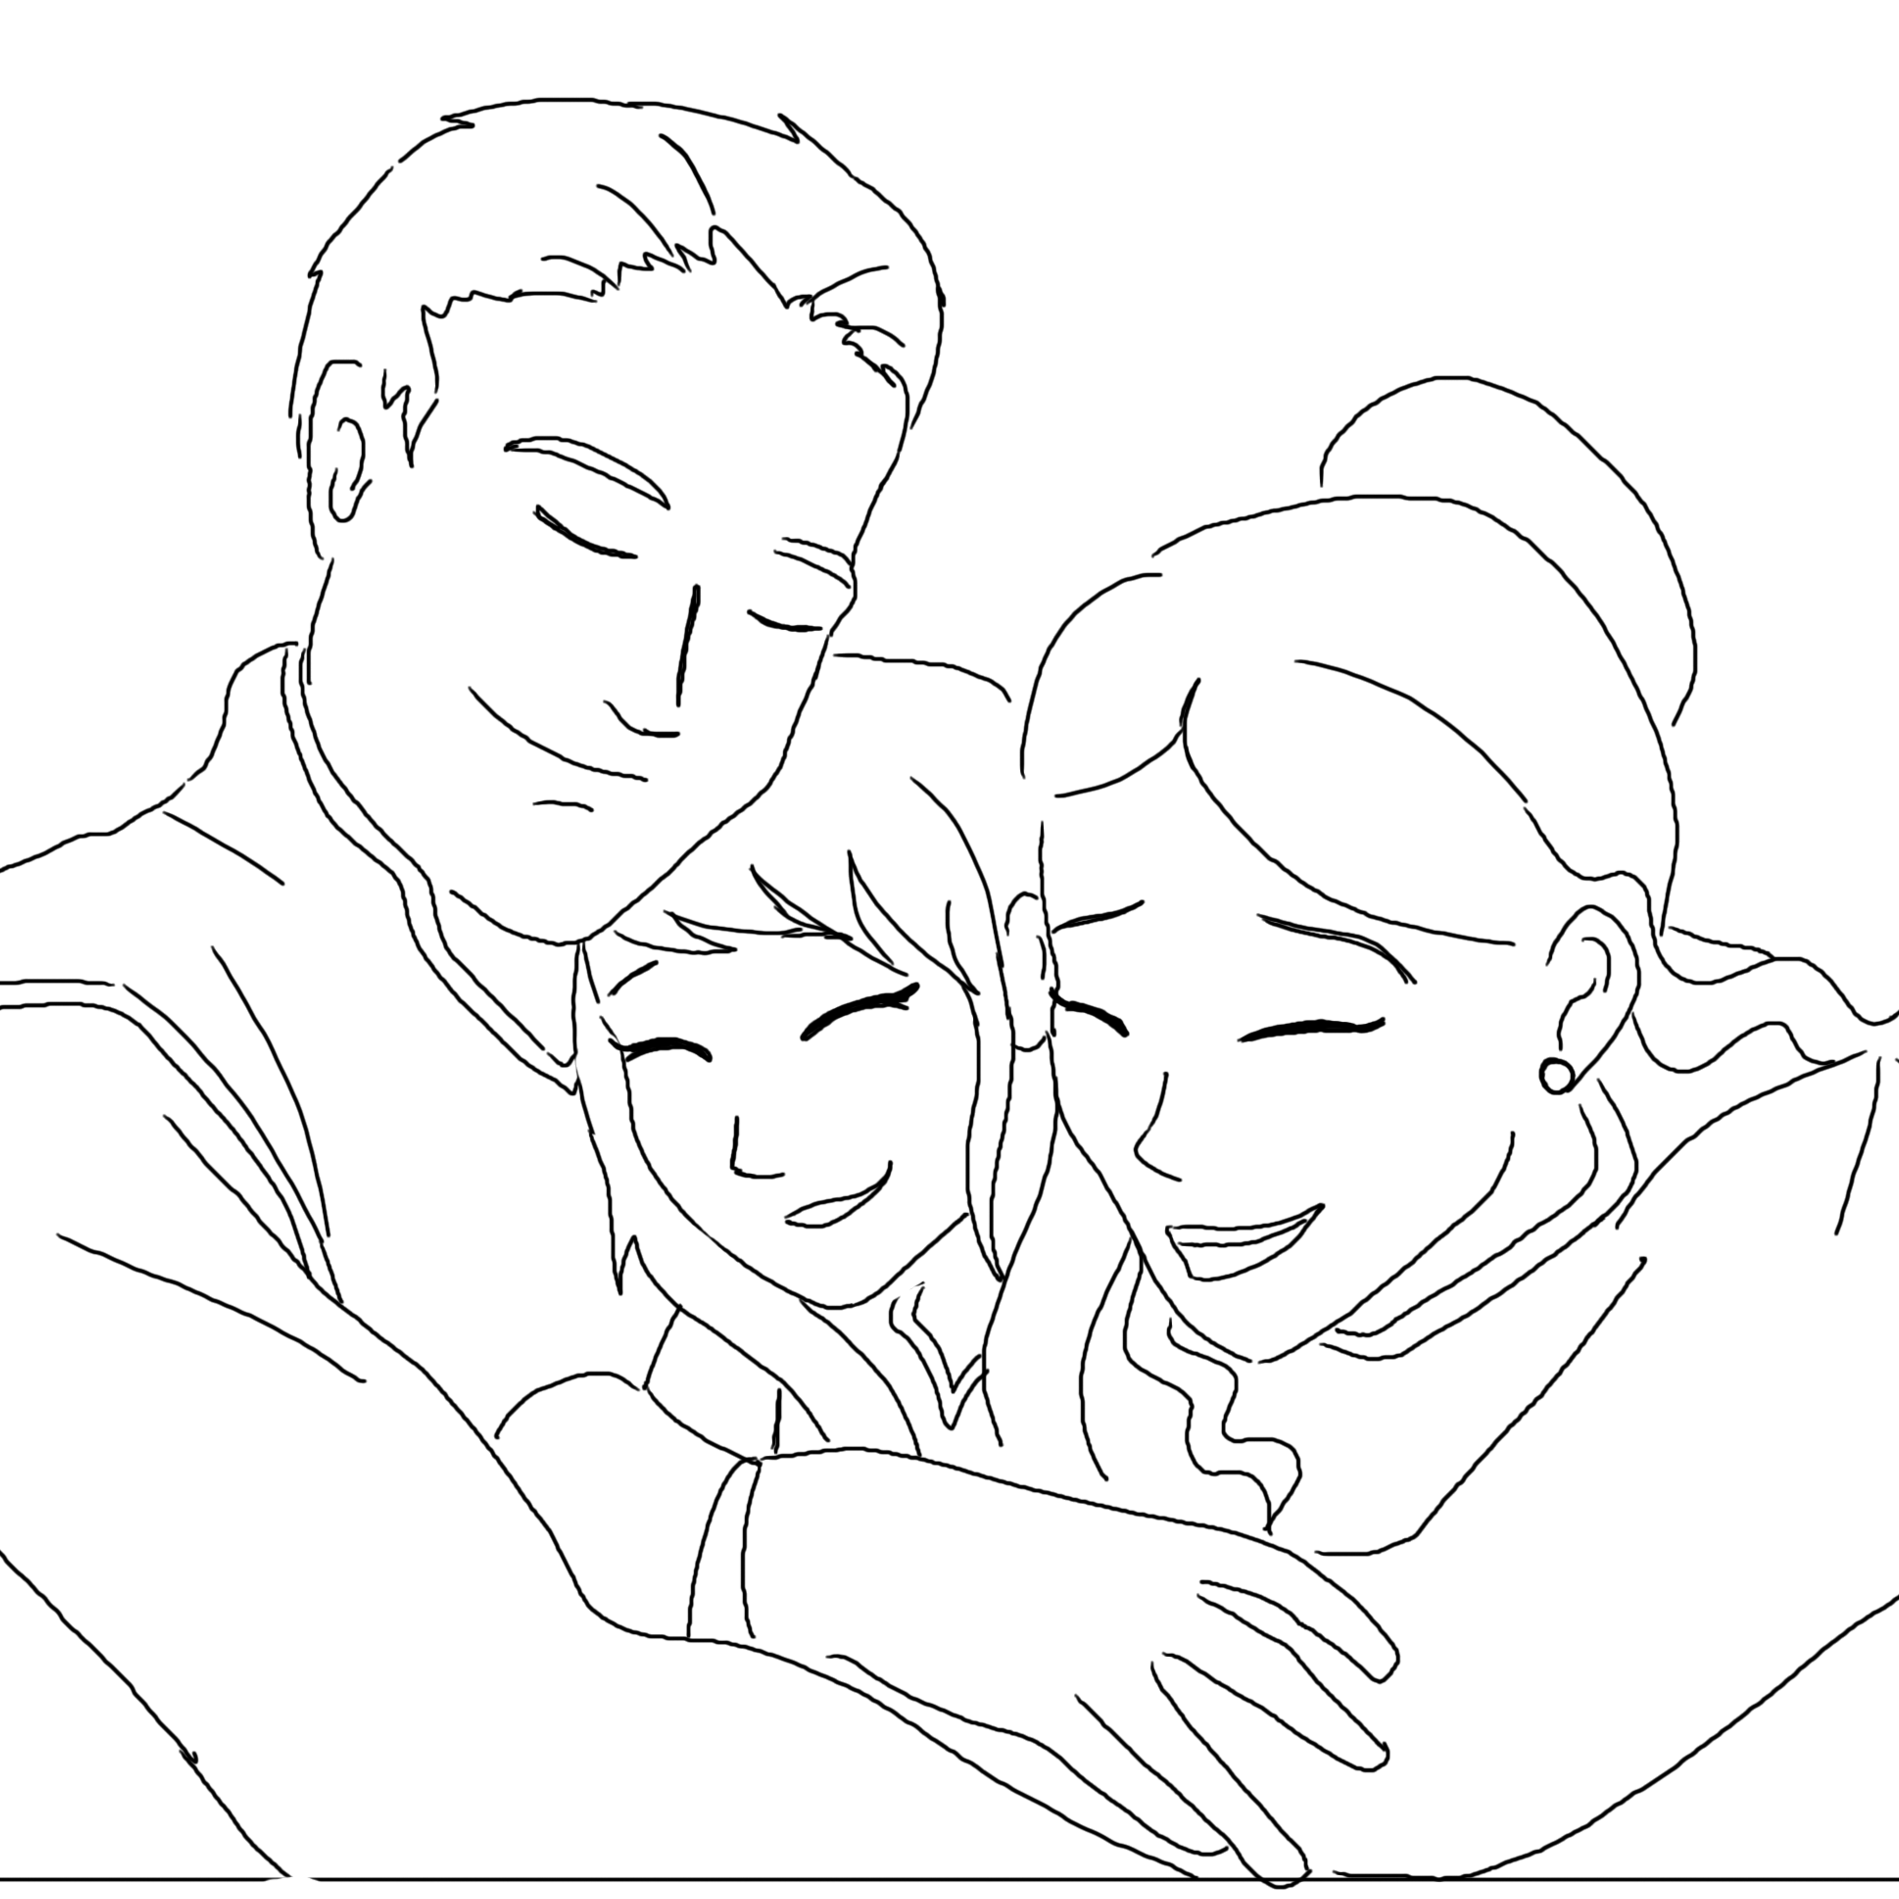 OM_Family_A.png